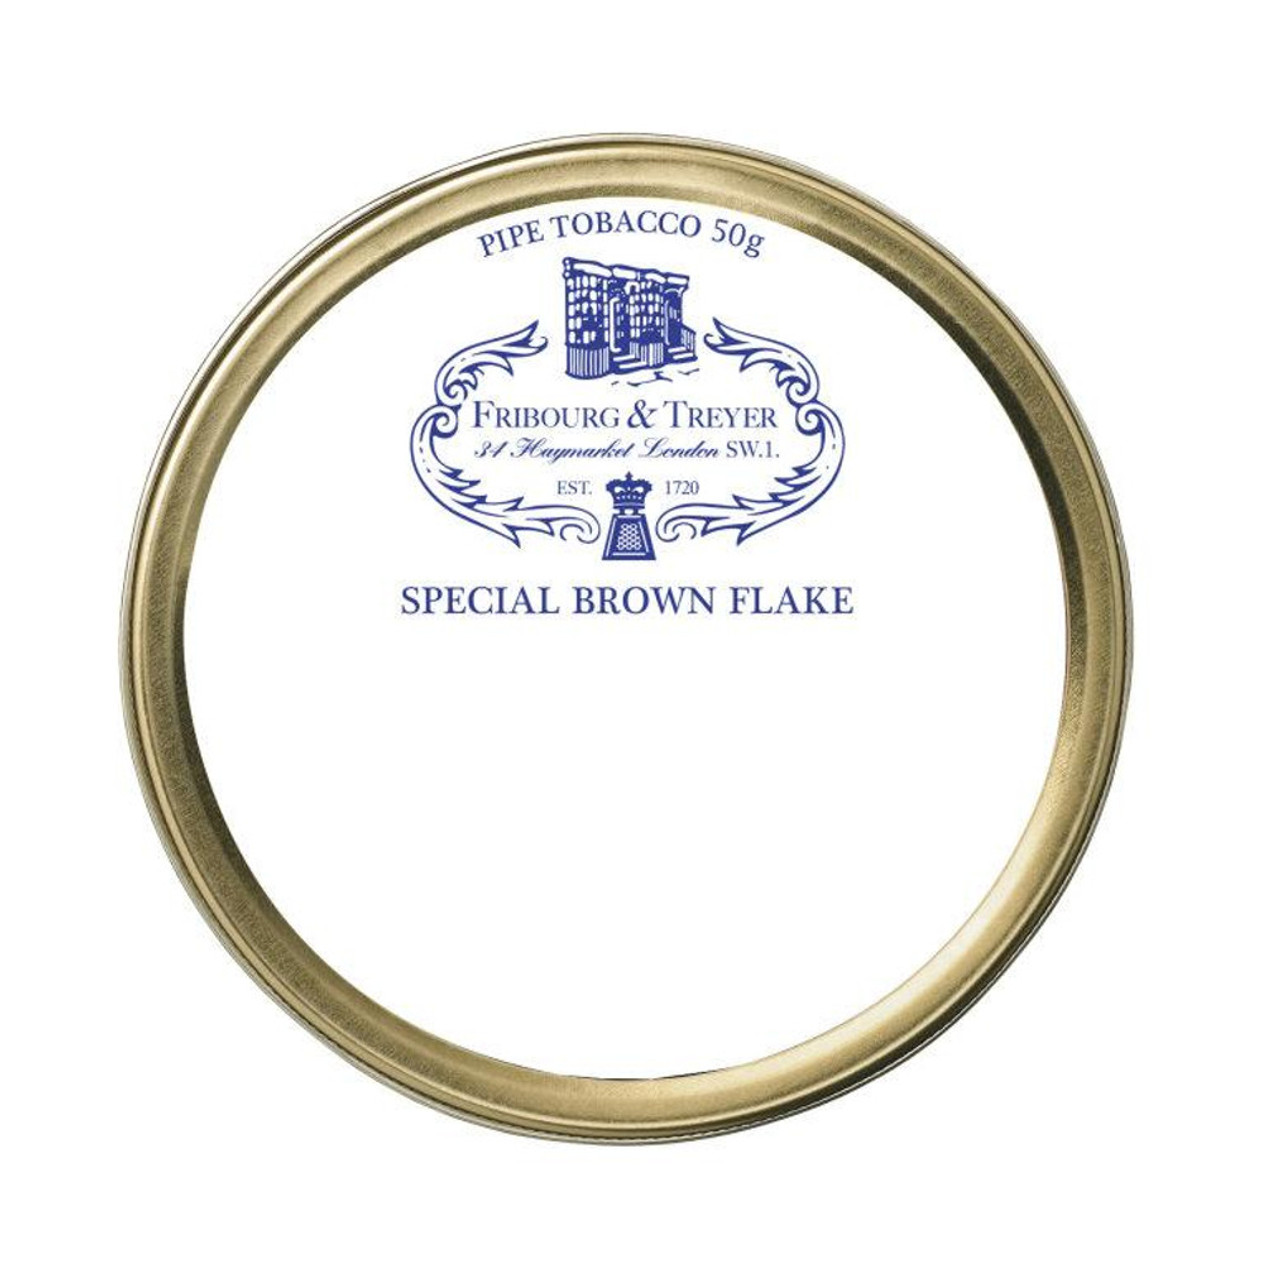 Fribourg & Treyer Special Brown Flake Pipe Tobacco | 1.75 OZ TIN